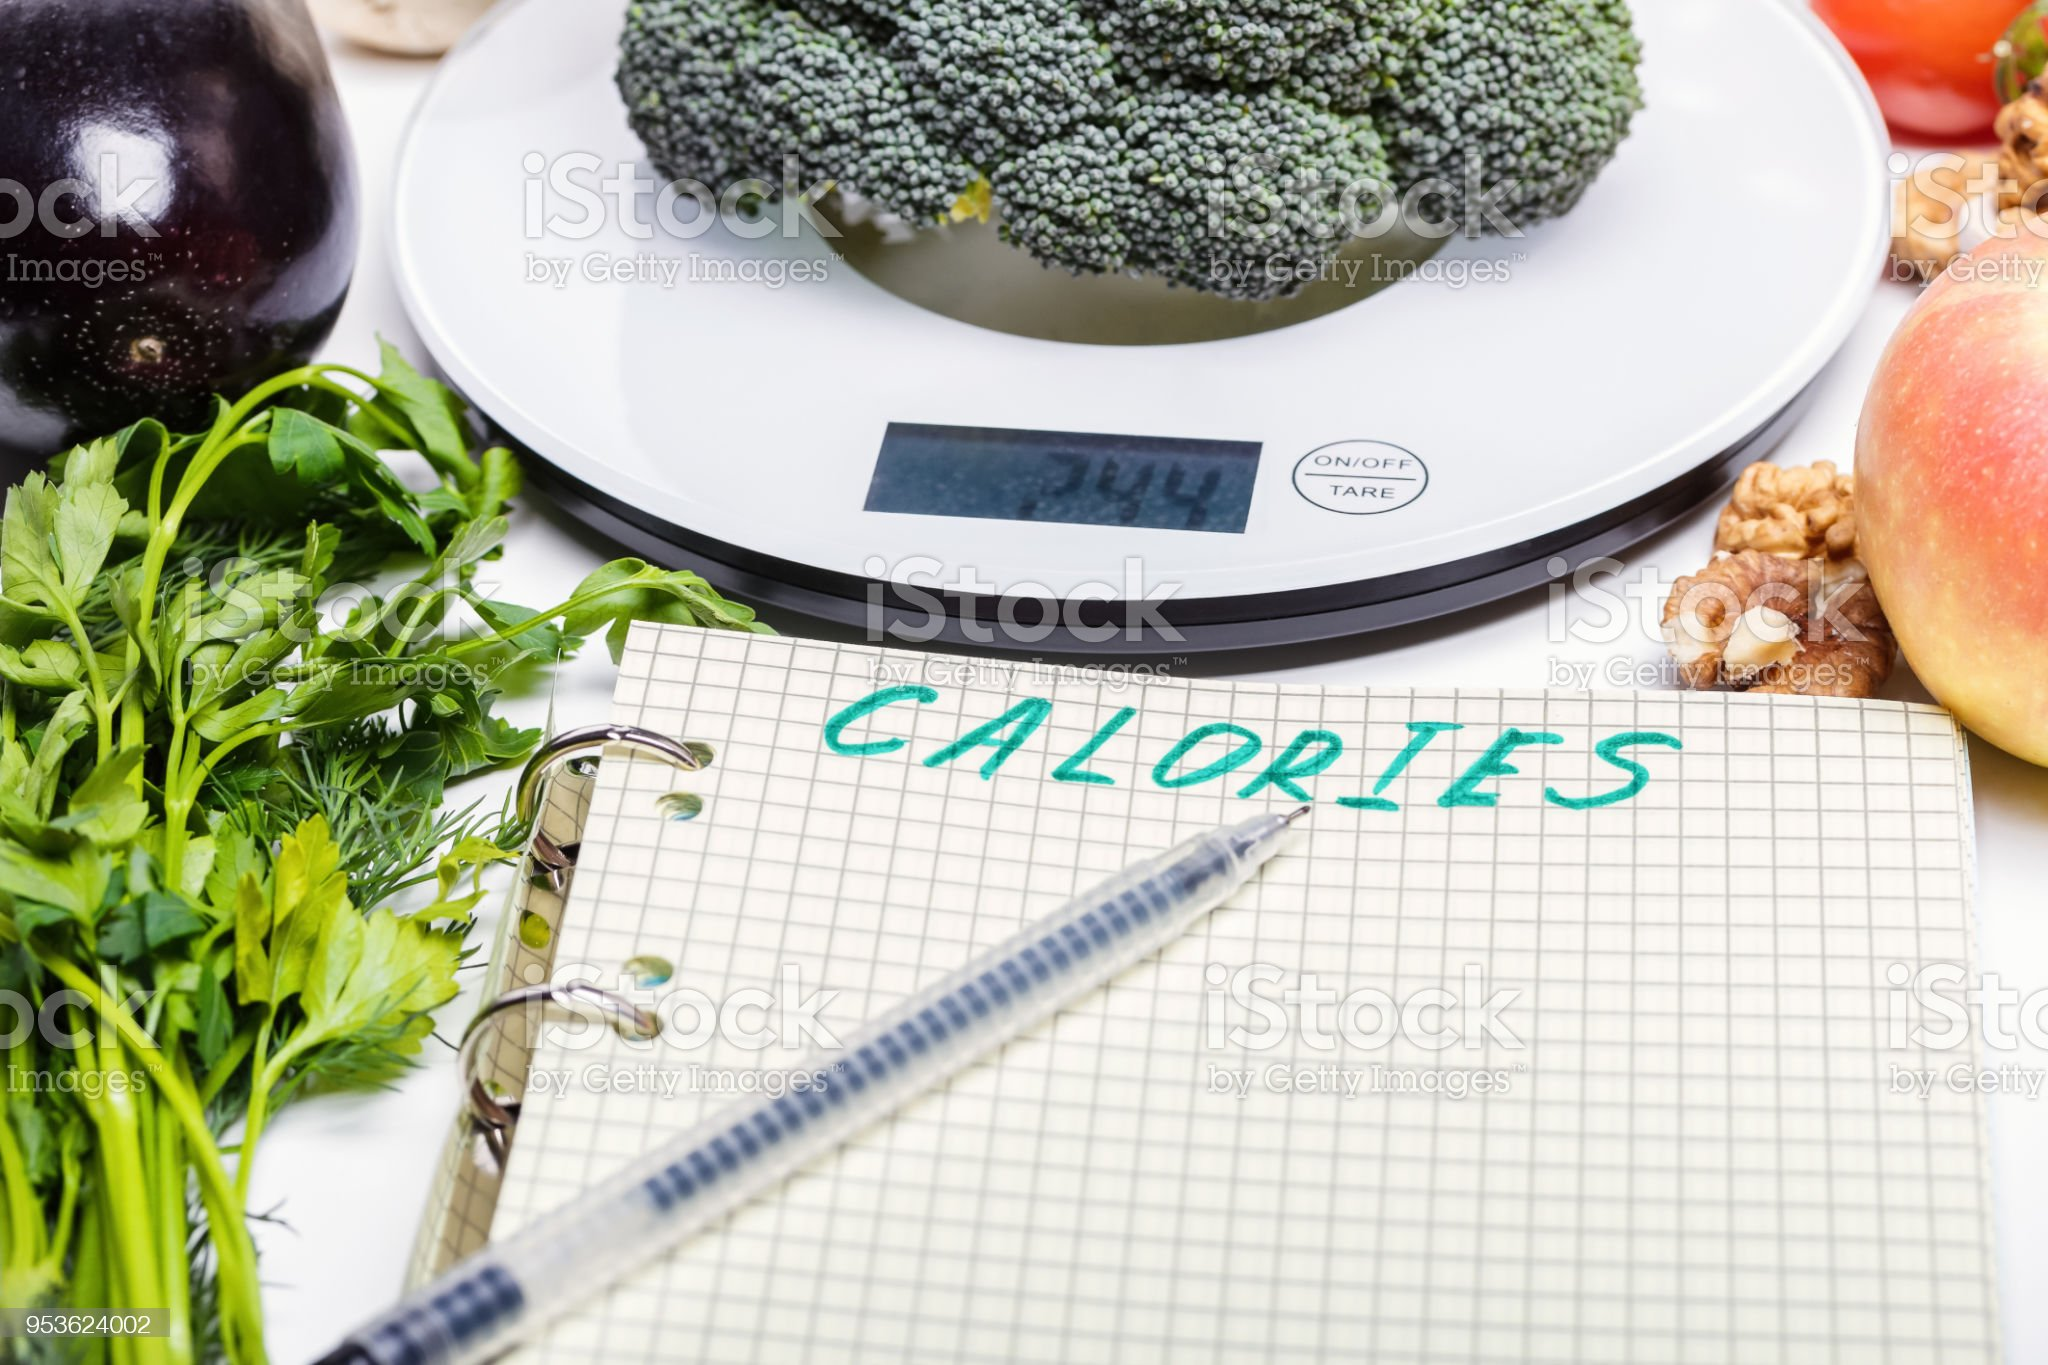 Weighing Products Vegetables Fruits On Kitchen Electronic Scales And Writing Values To The List For Calorie Counting And Making Up A Proper Diet Menu Dieting Stock Photos